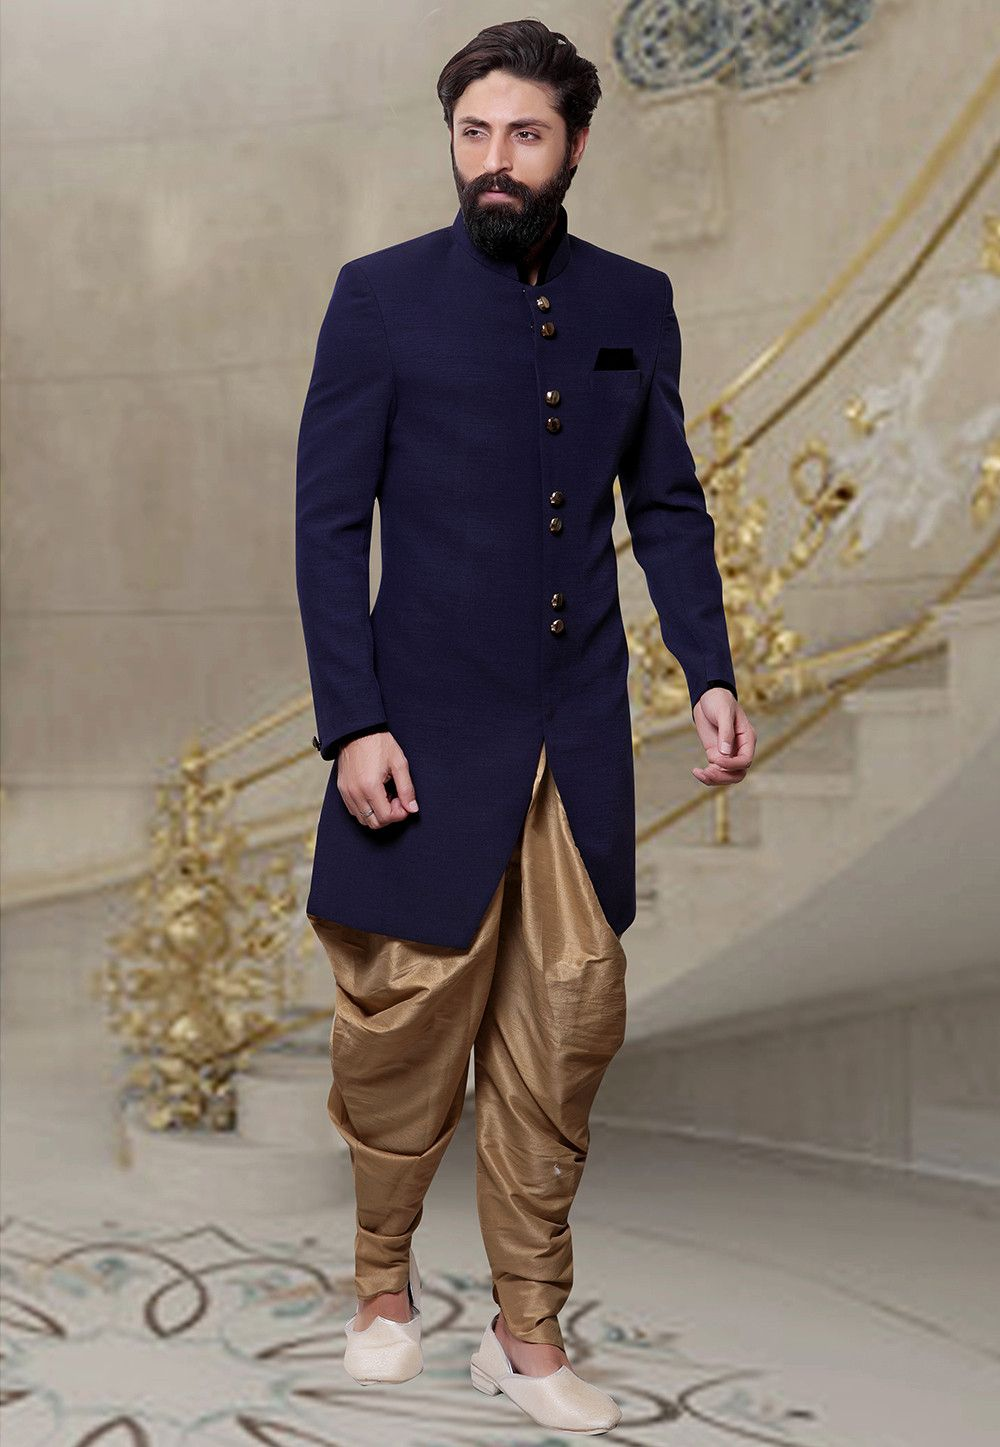 3bb179fc3db4 Readymade Khadi Sherwani in Navy Blue This Plain attire is Enhanced with  Buttons Available with a Beige Art Silk Dhoti Pant Do note: Footwear shown  in the ...